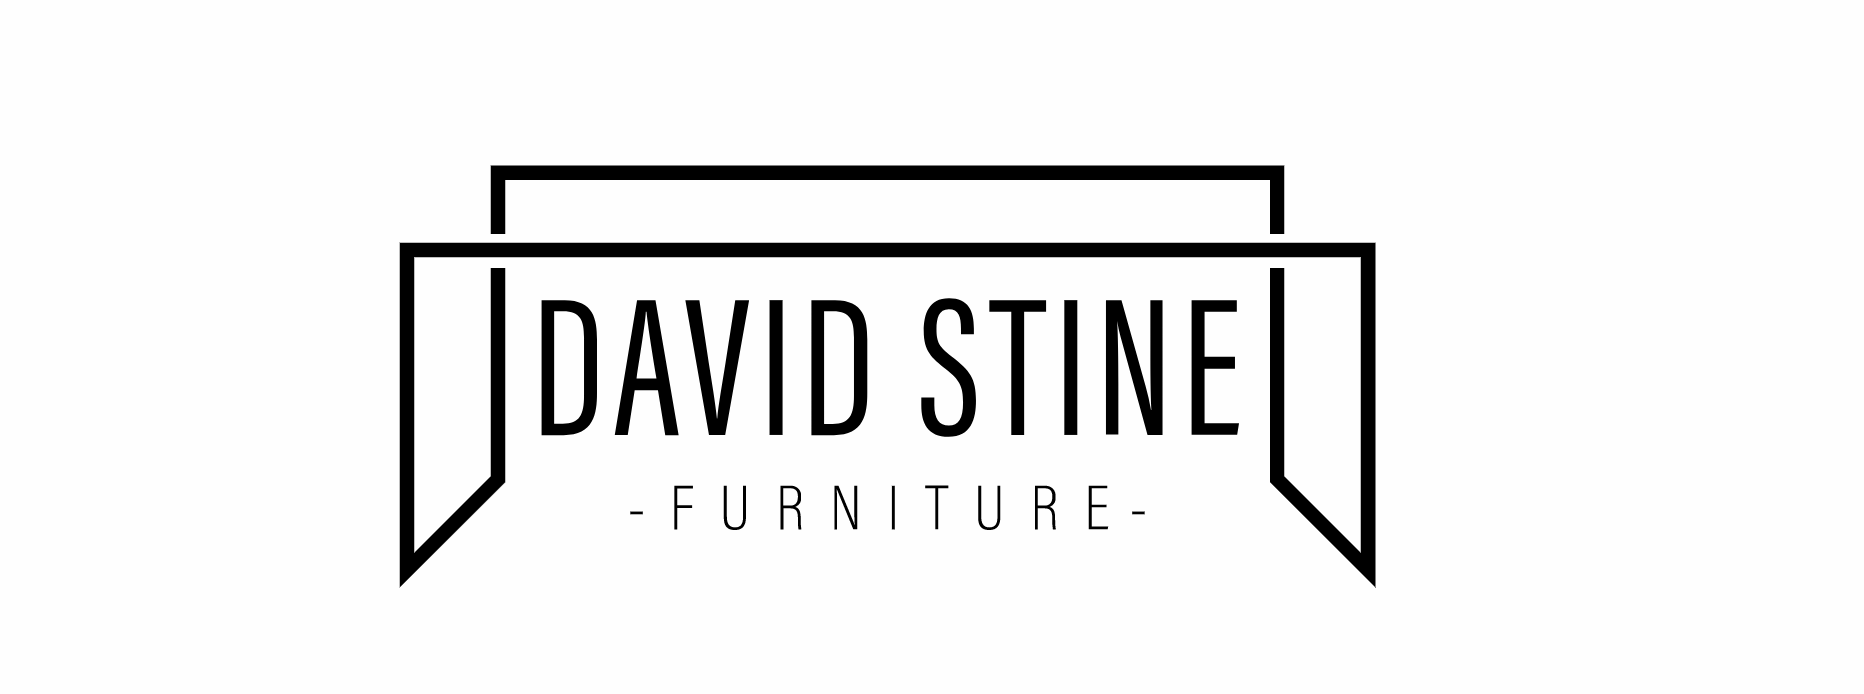 Woodworker logo: David Stine Furniture